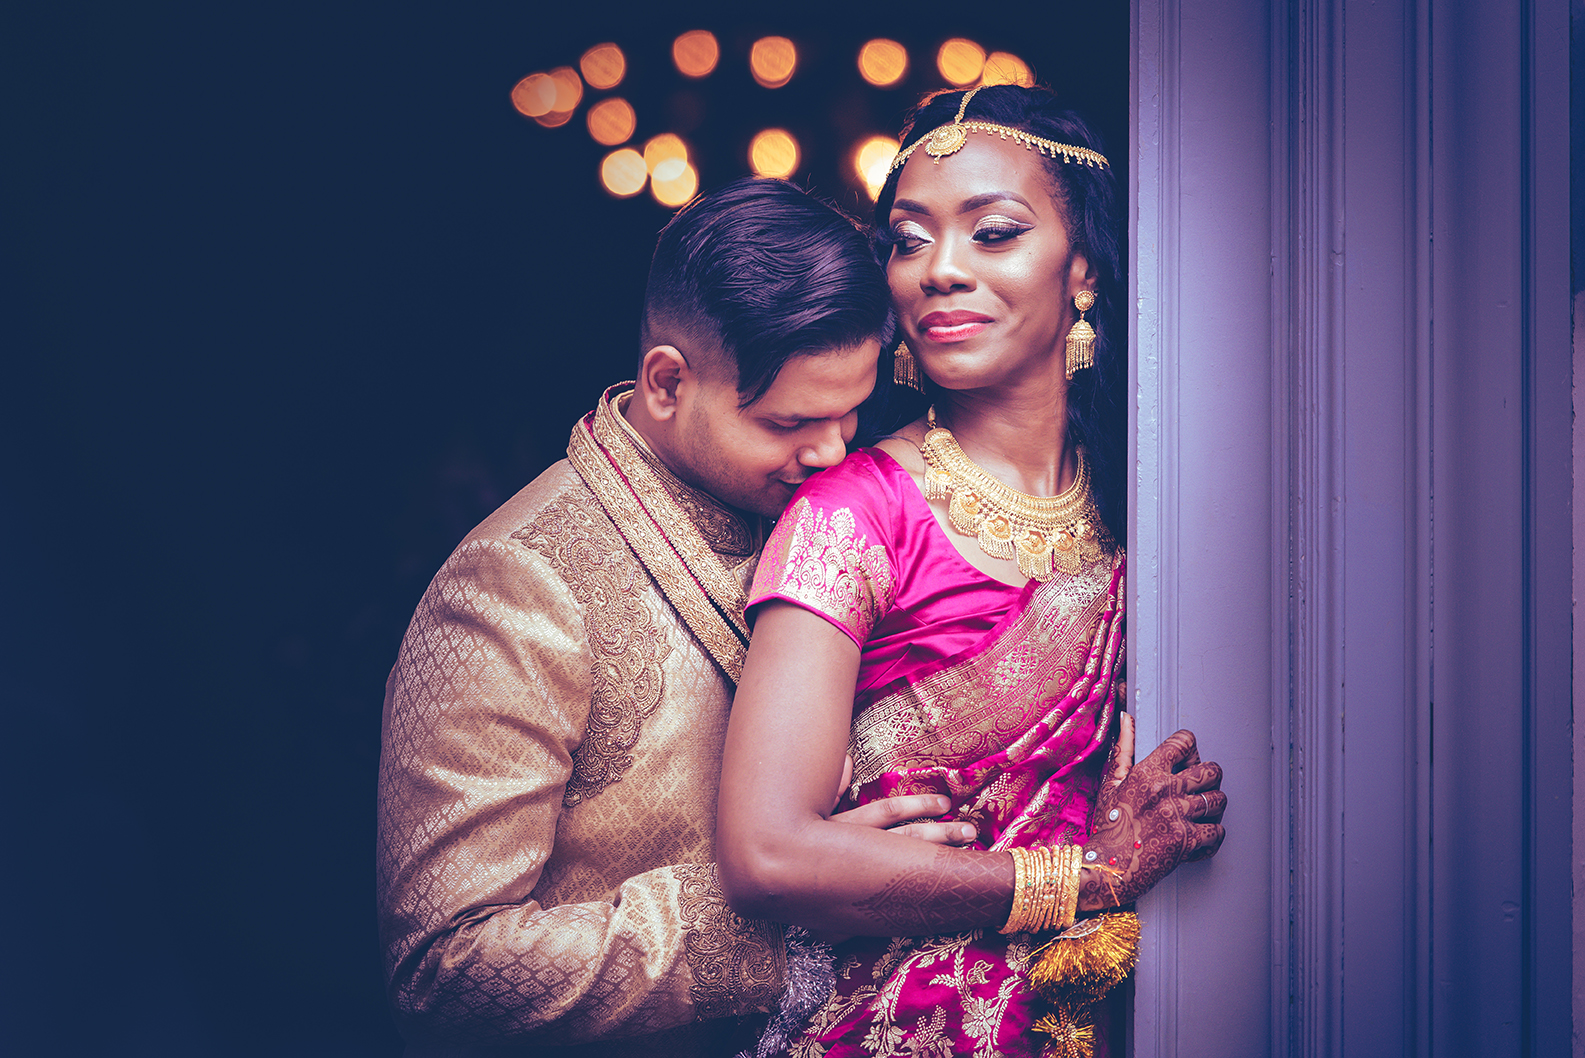 south_asian_wedding_photography_dhoom_studio_new_york49 SOUTH ASIAN WEDDINGS